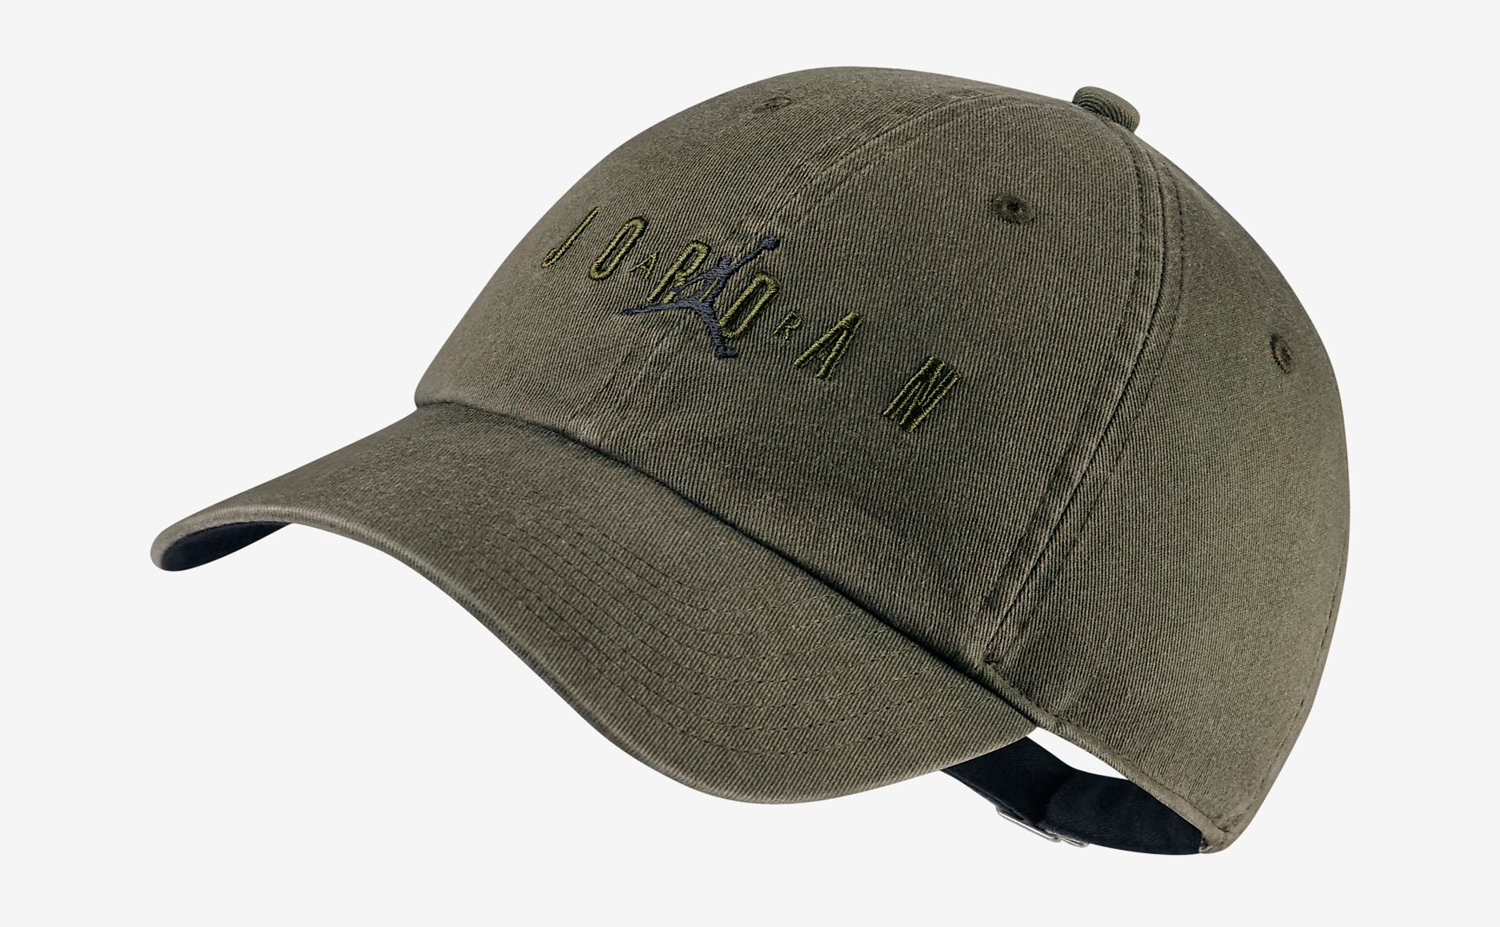 jordan-12-chris-paul-olive-dad-hat